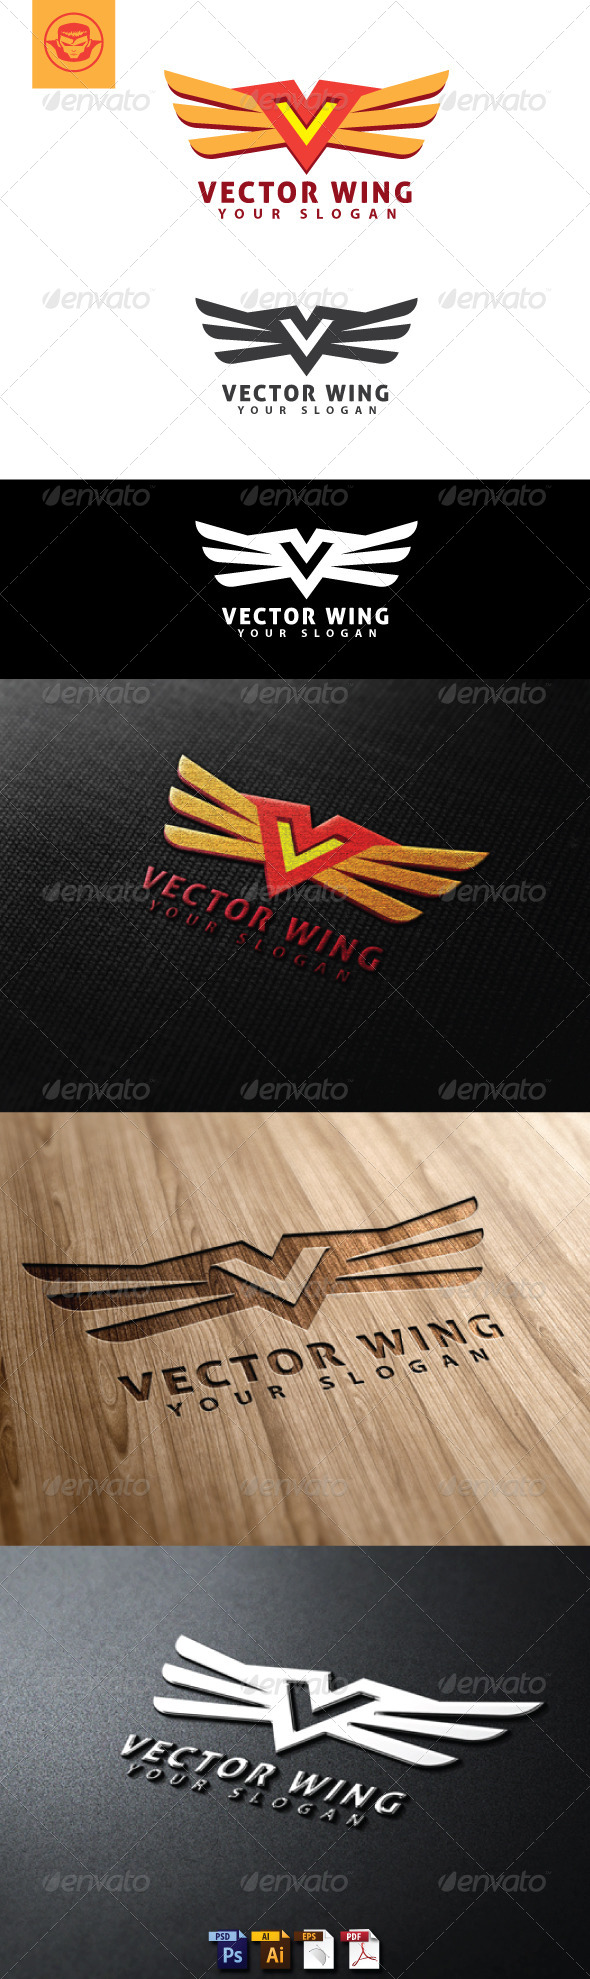 GraphicRiver Vector Wing Logo Template 4797996